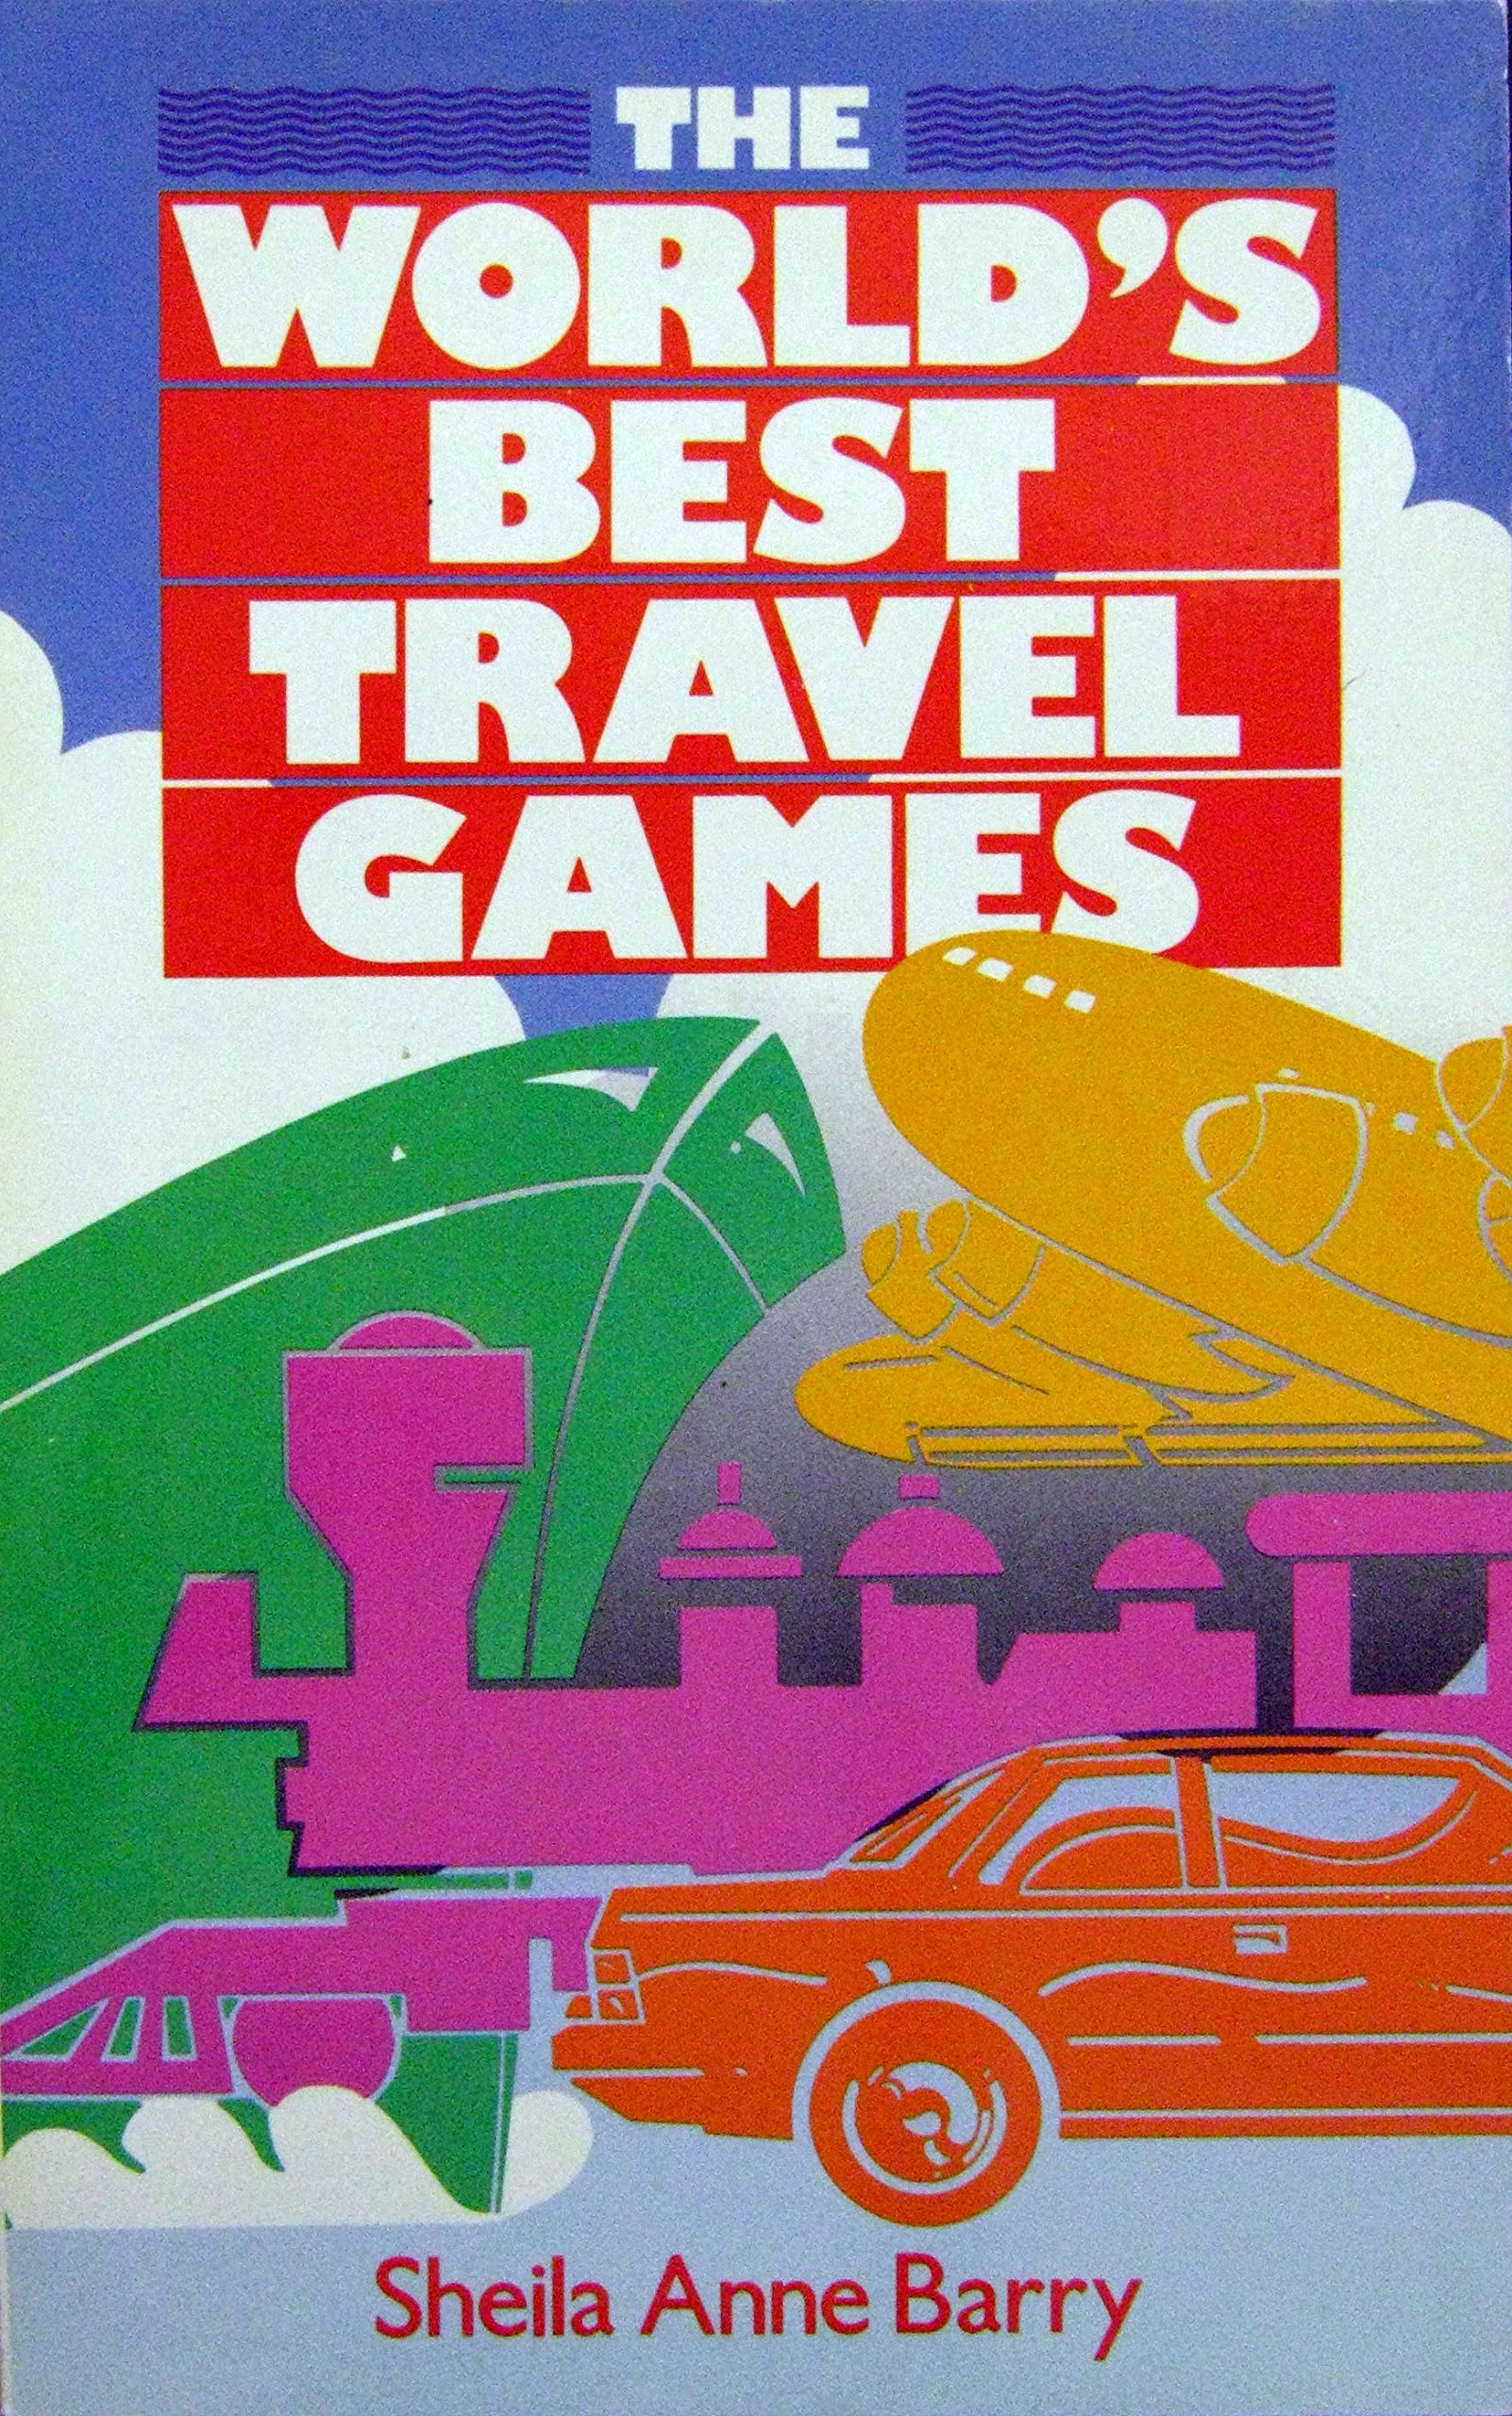 The World's Best Travel Games